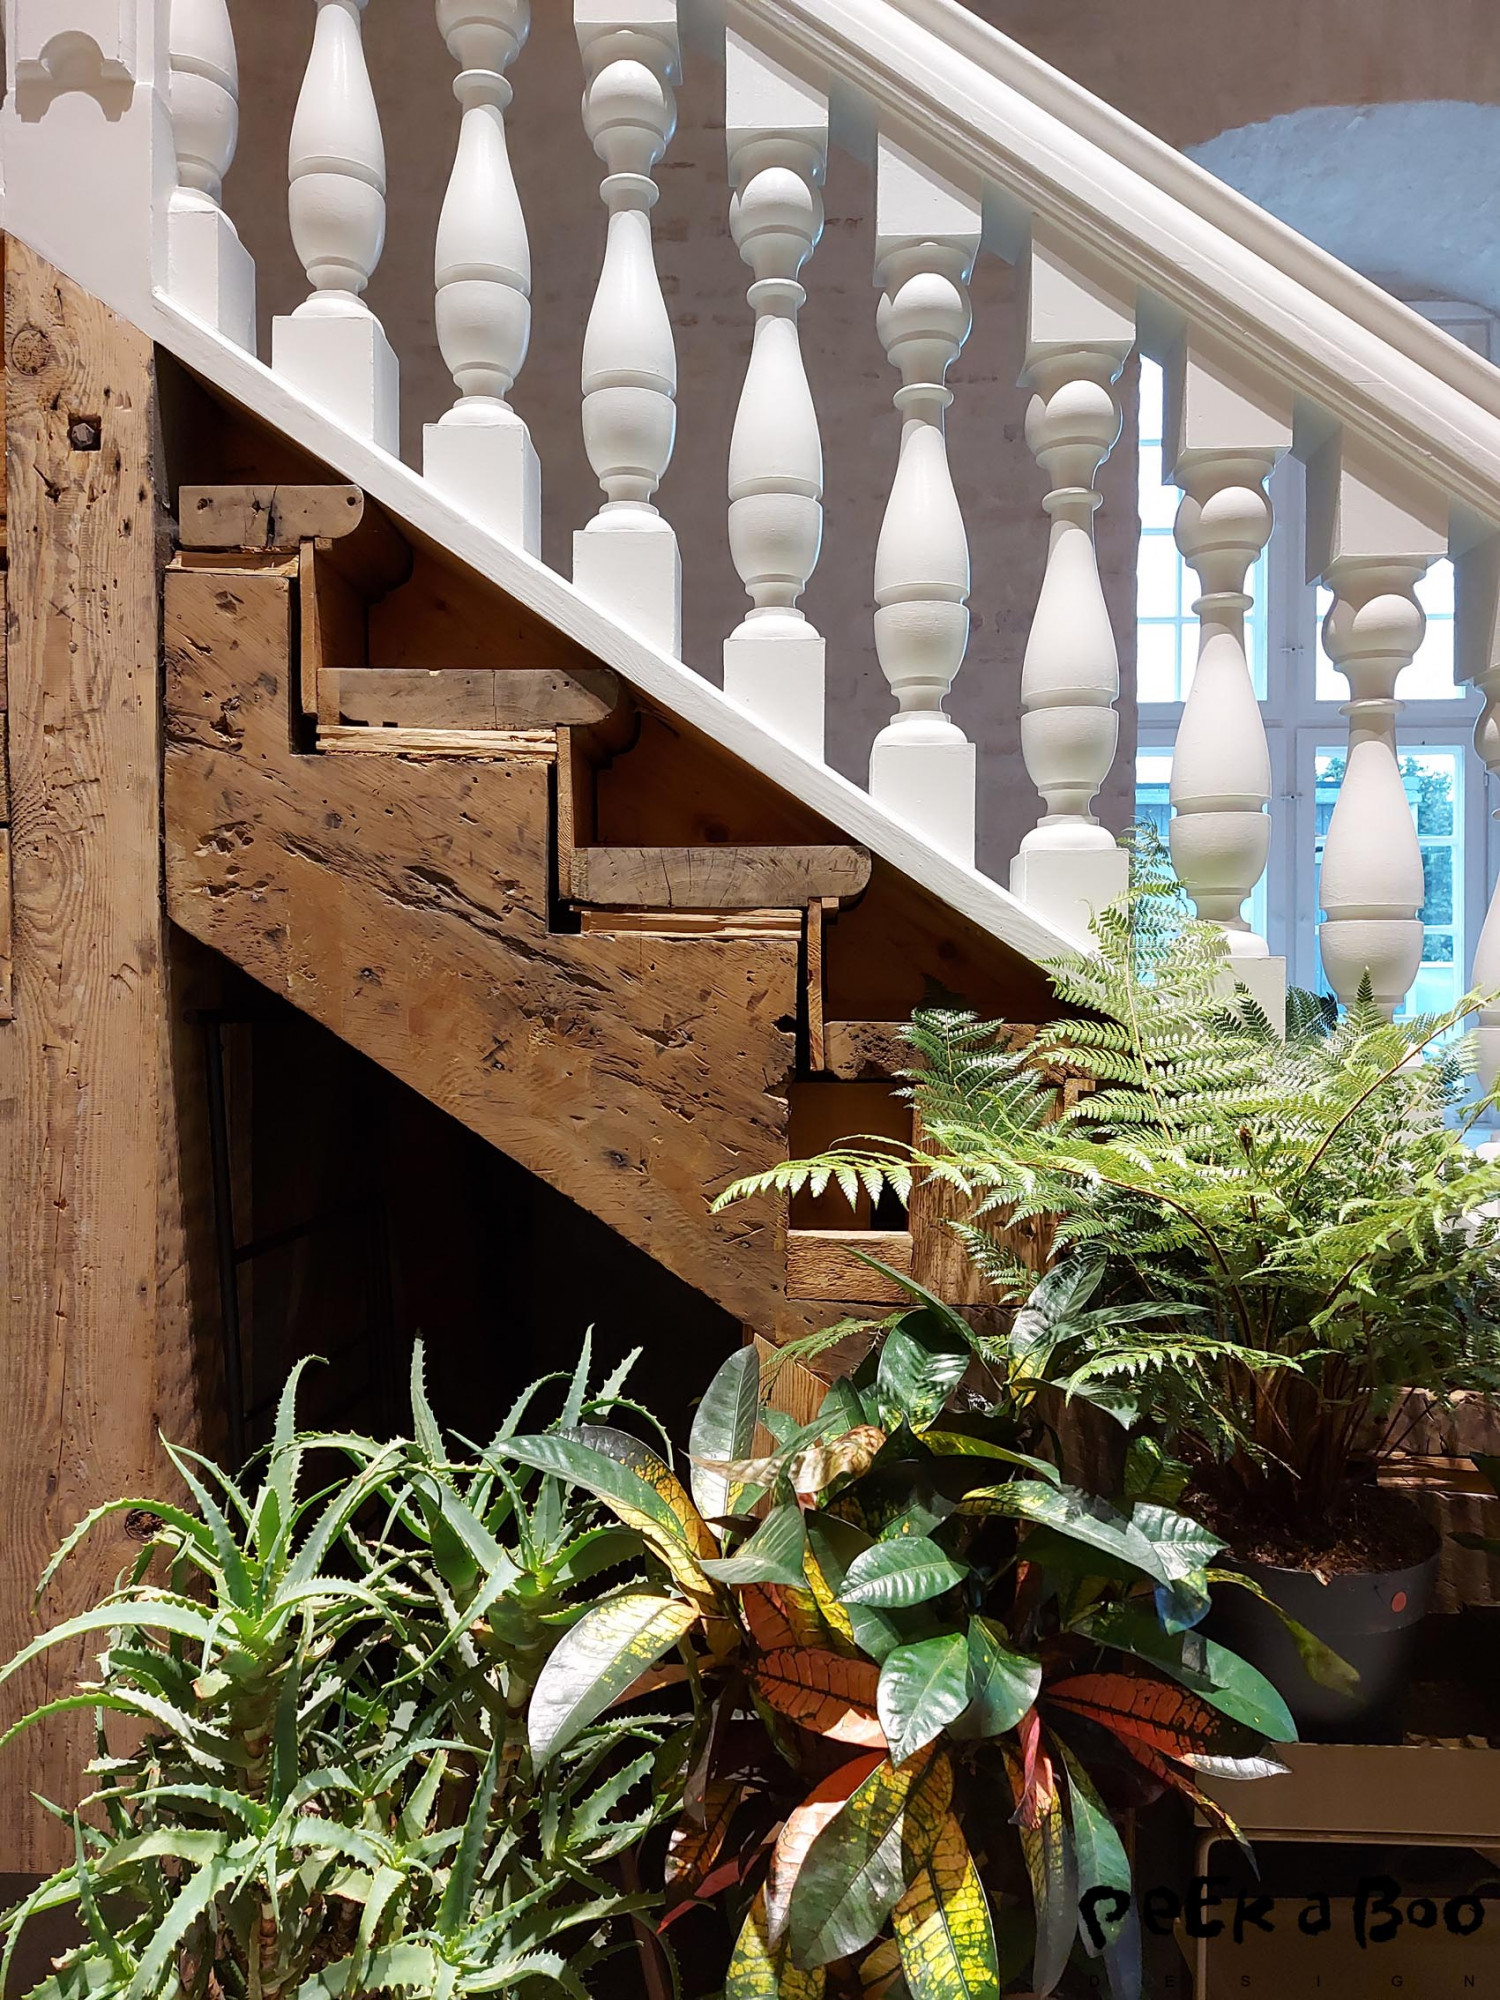 the staircase to the workspace of Ferm Living was a contrast of refined woodwork and rustic old wood.